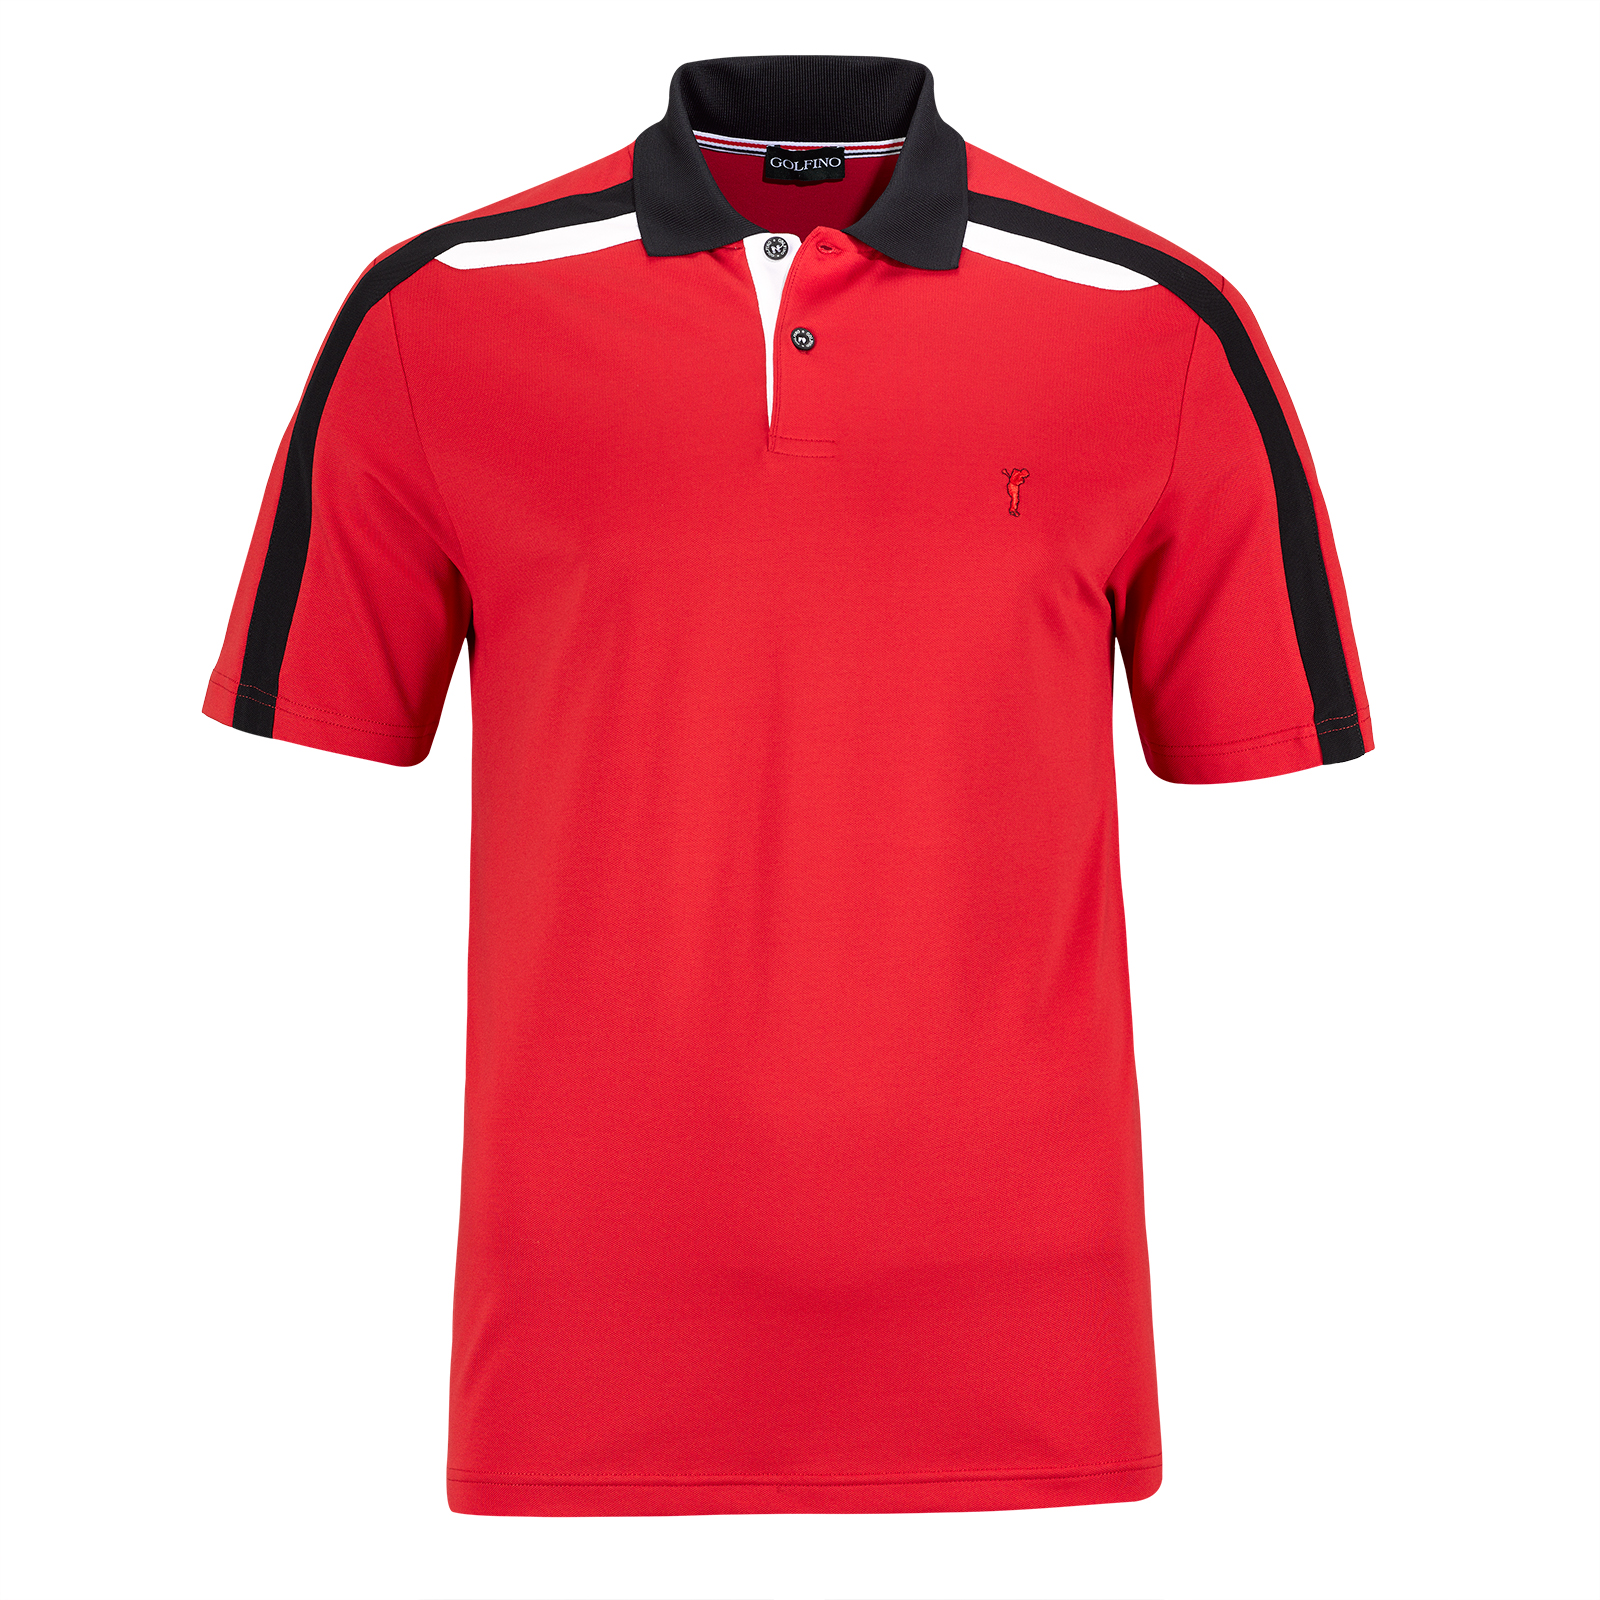 Extra dry men's short sleeve golf piqué polo in Pro look with contrasting colours